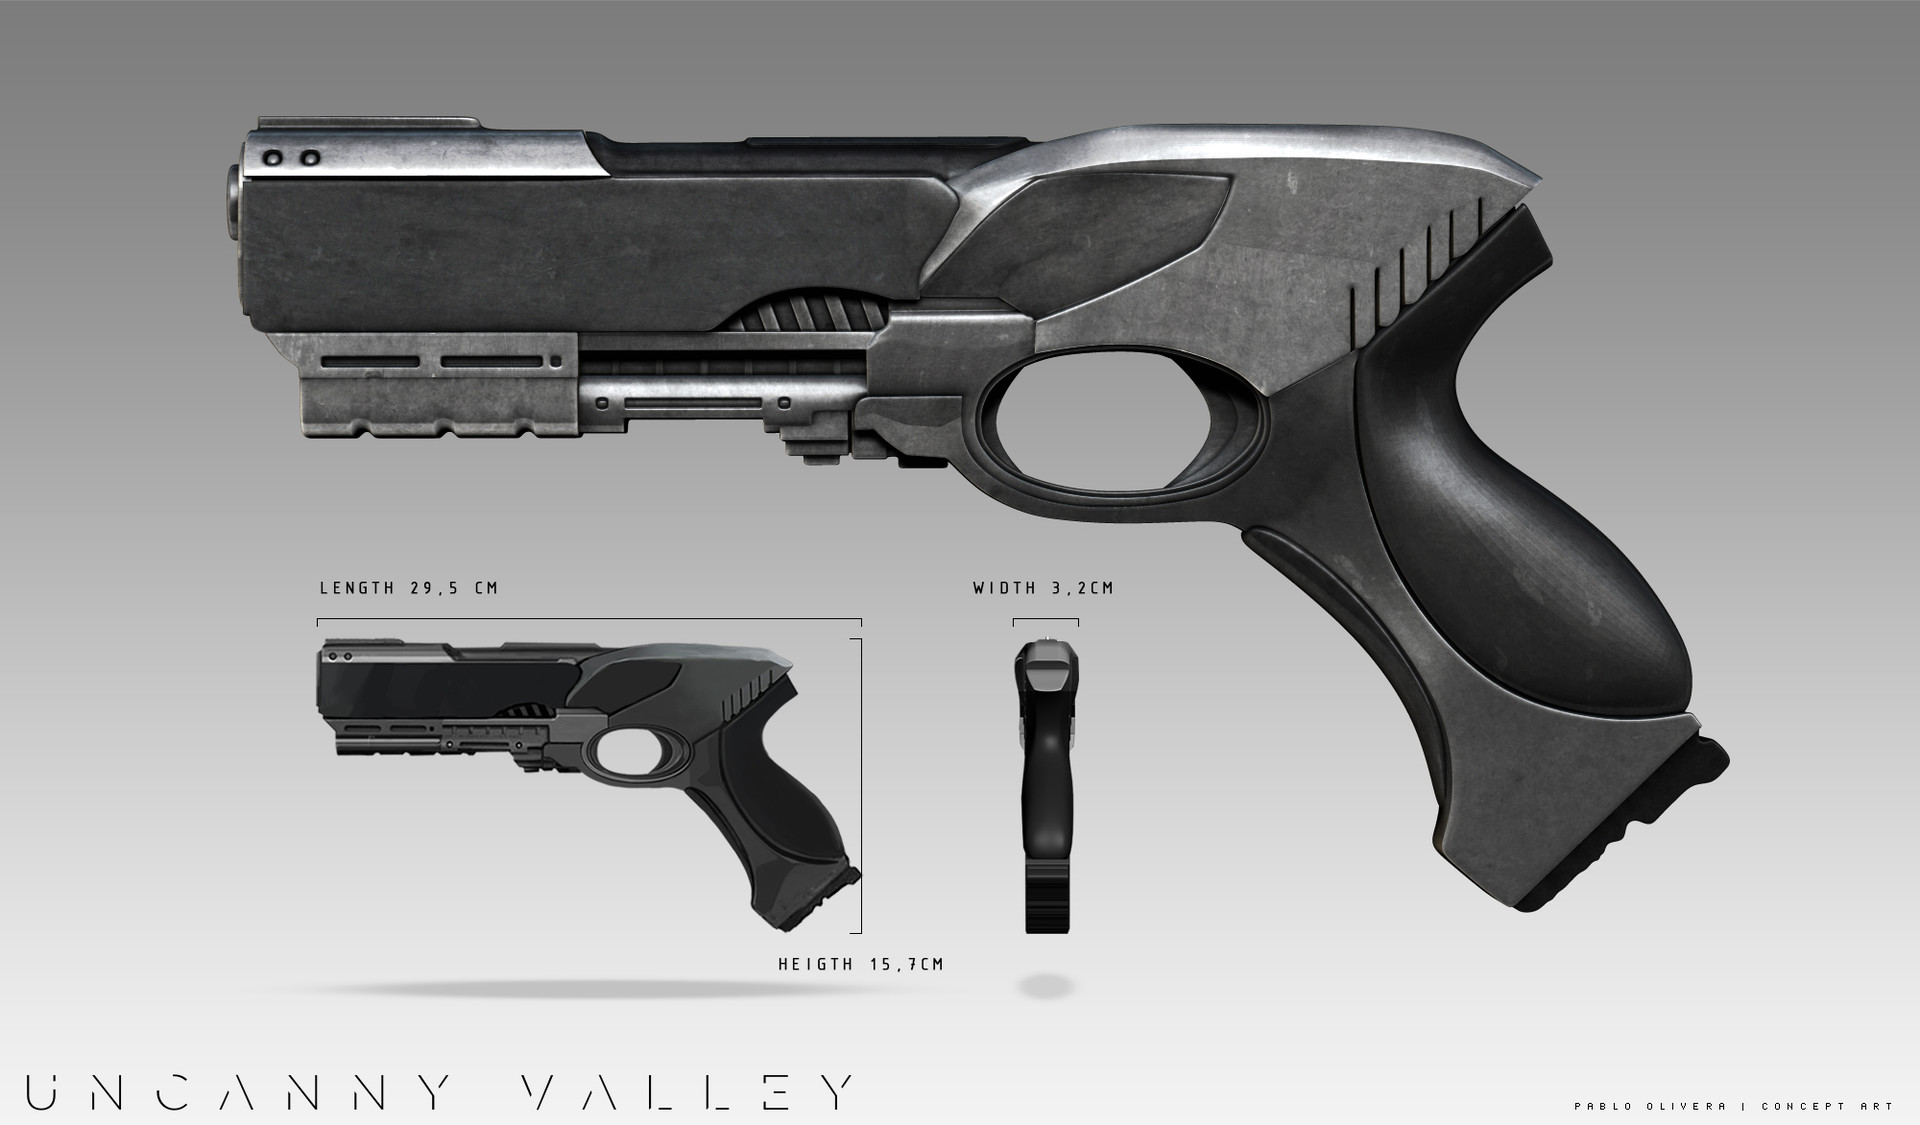 Pablo olivera uncanny valley weapons todas 01